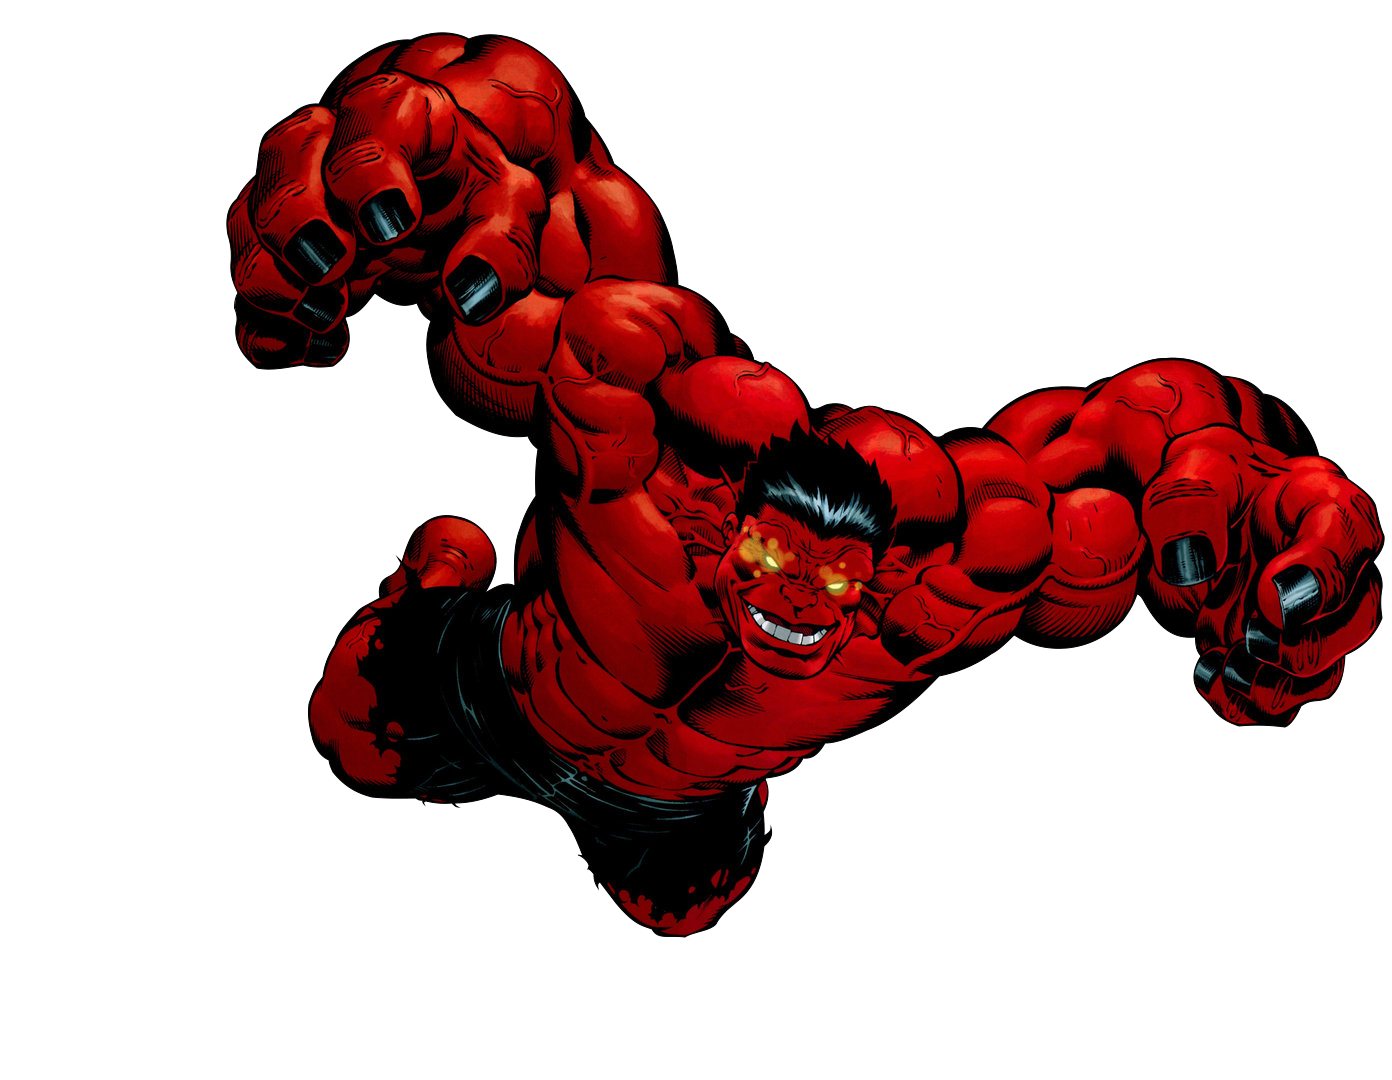 Hulk clipart 1080p. Red render by bobhertley